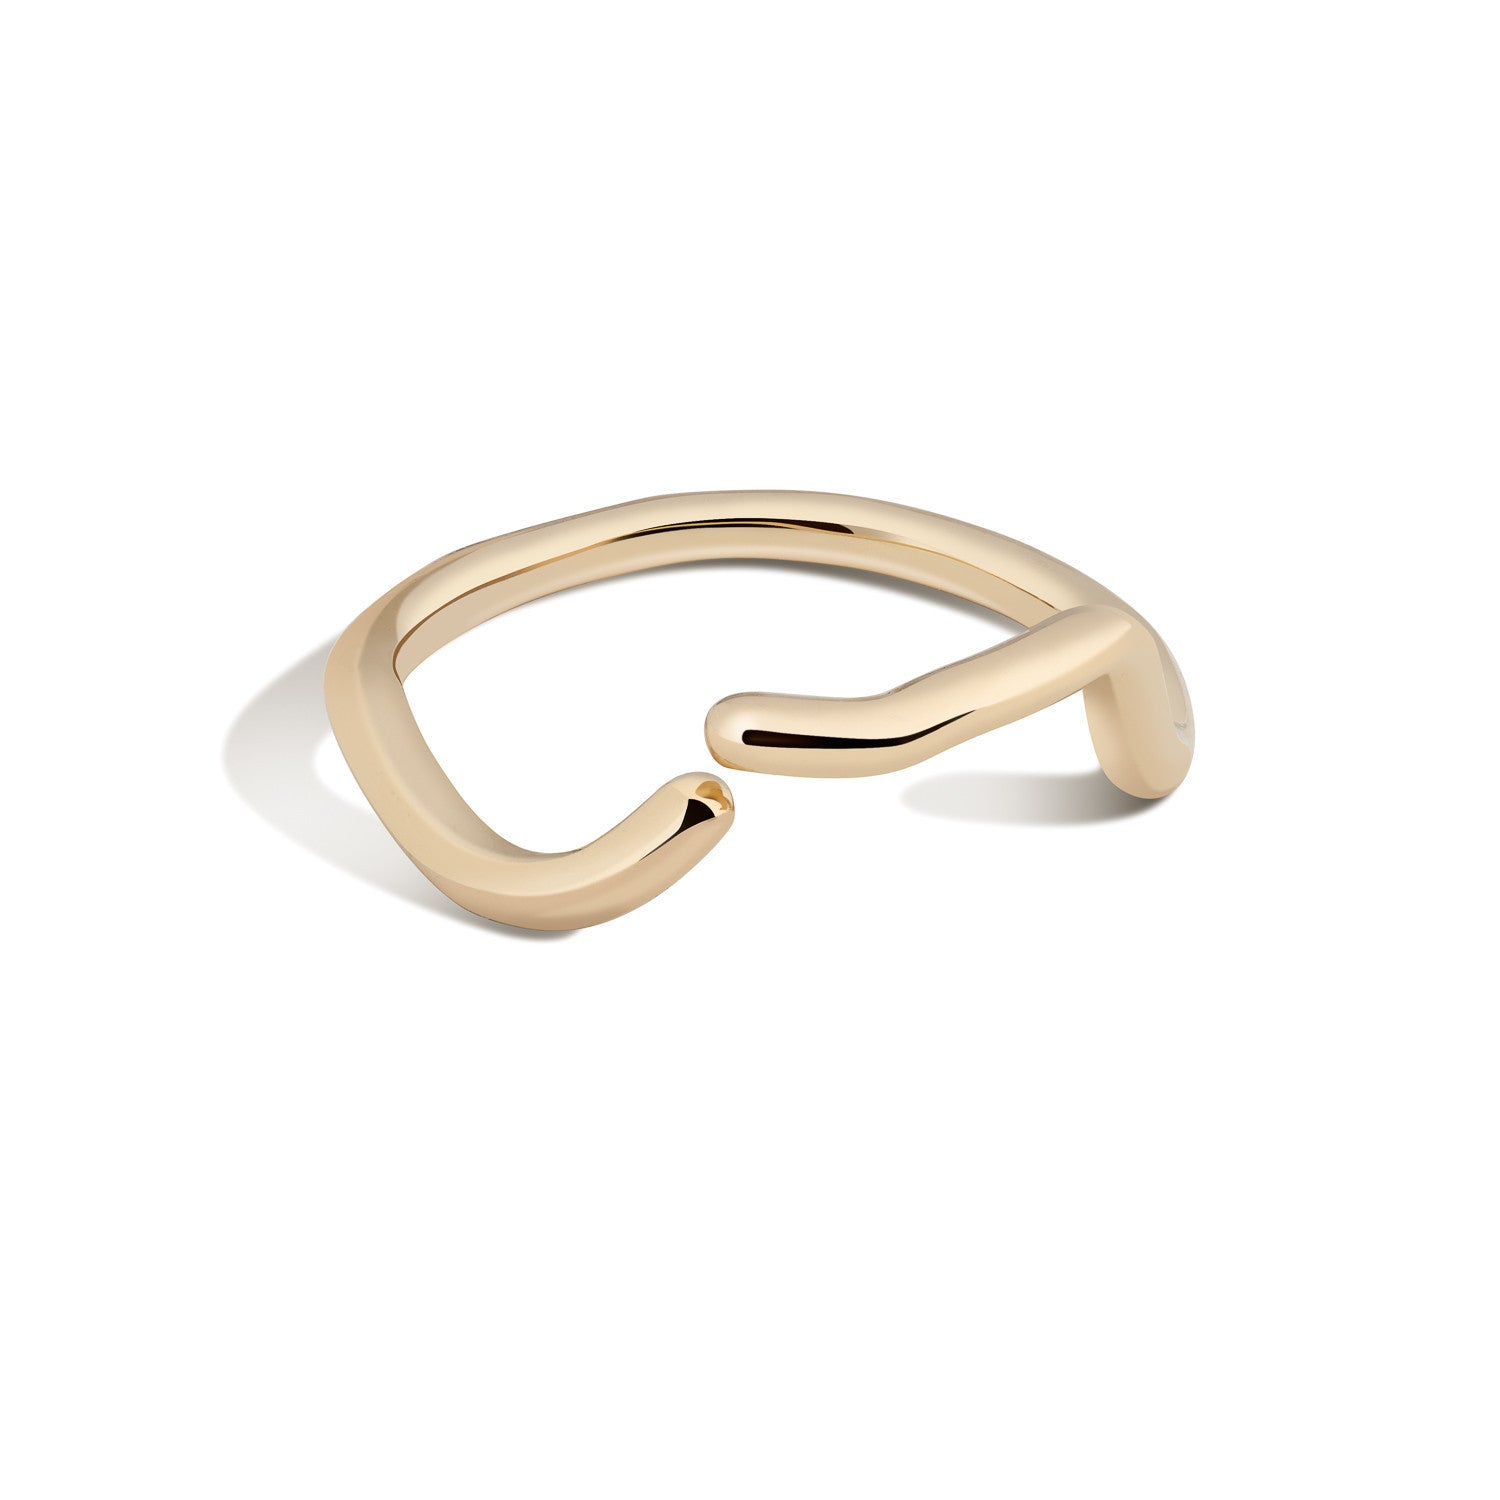 14K Gold Subway Ring - Inwood to World Trade Center